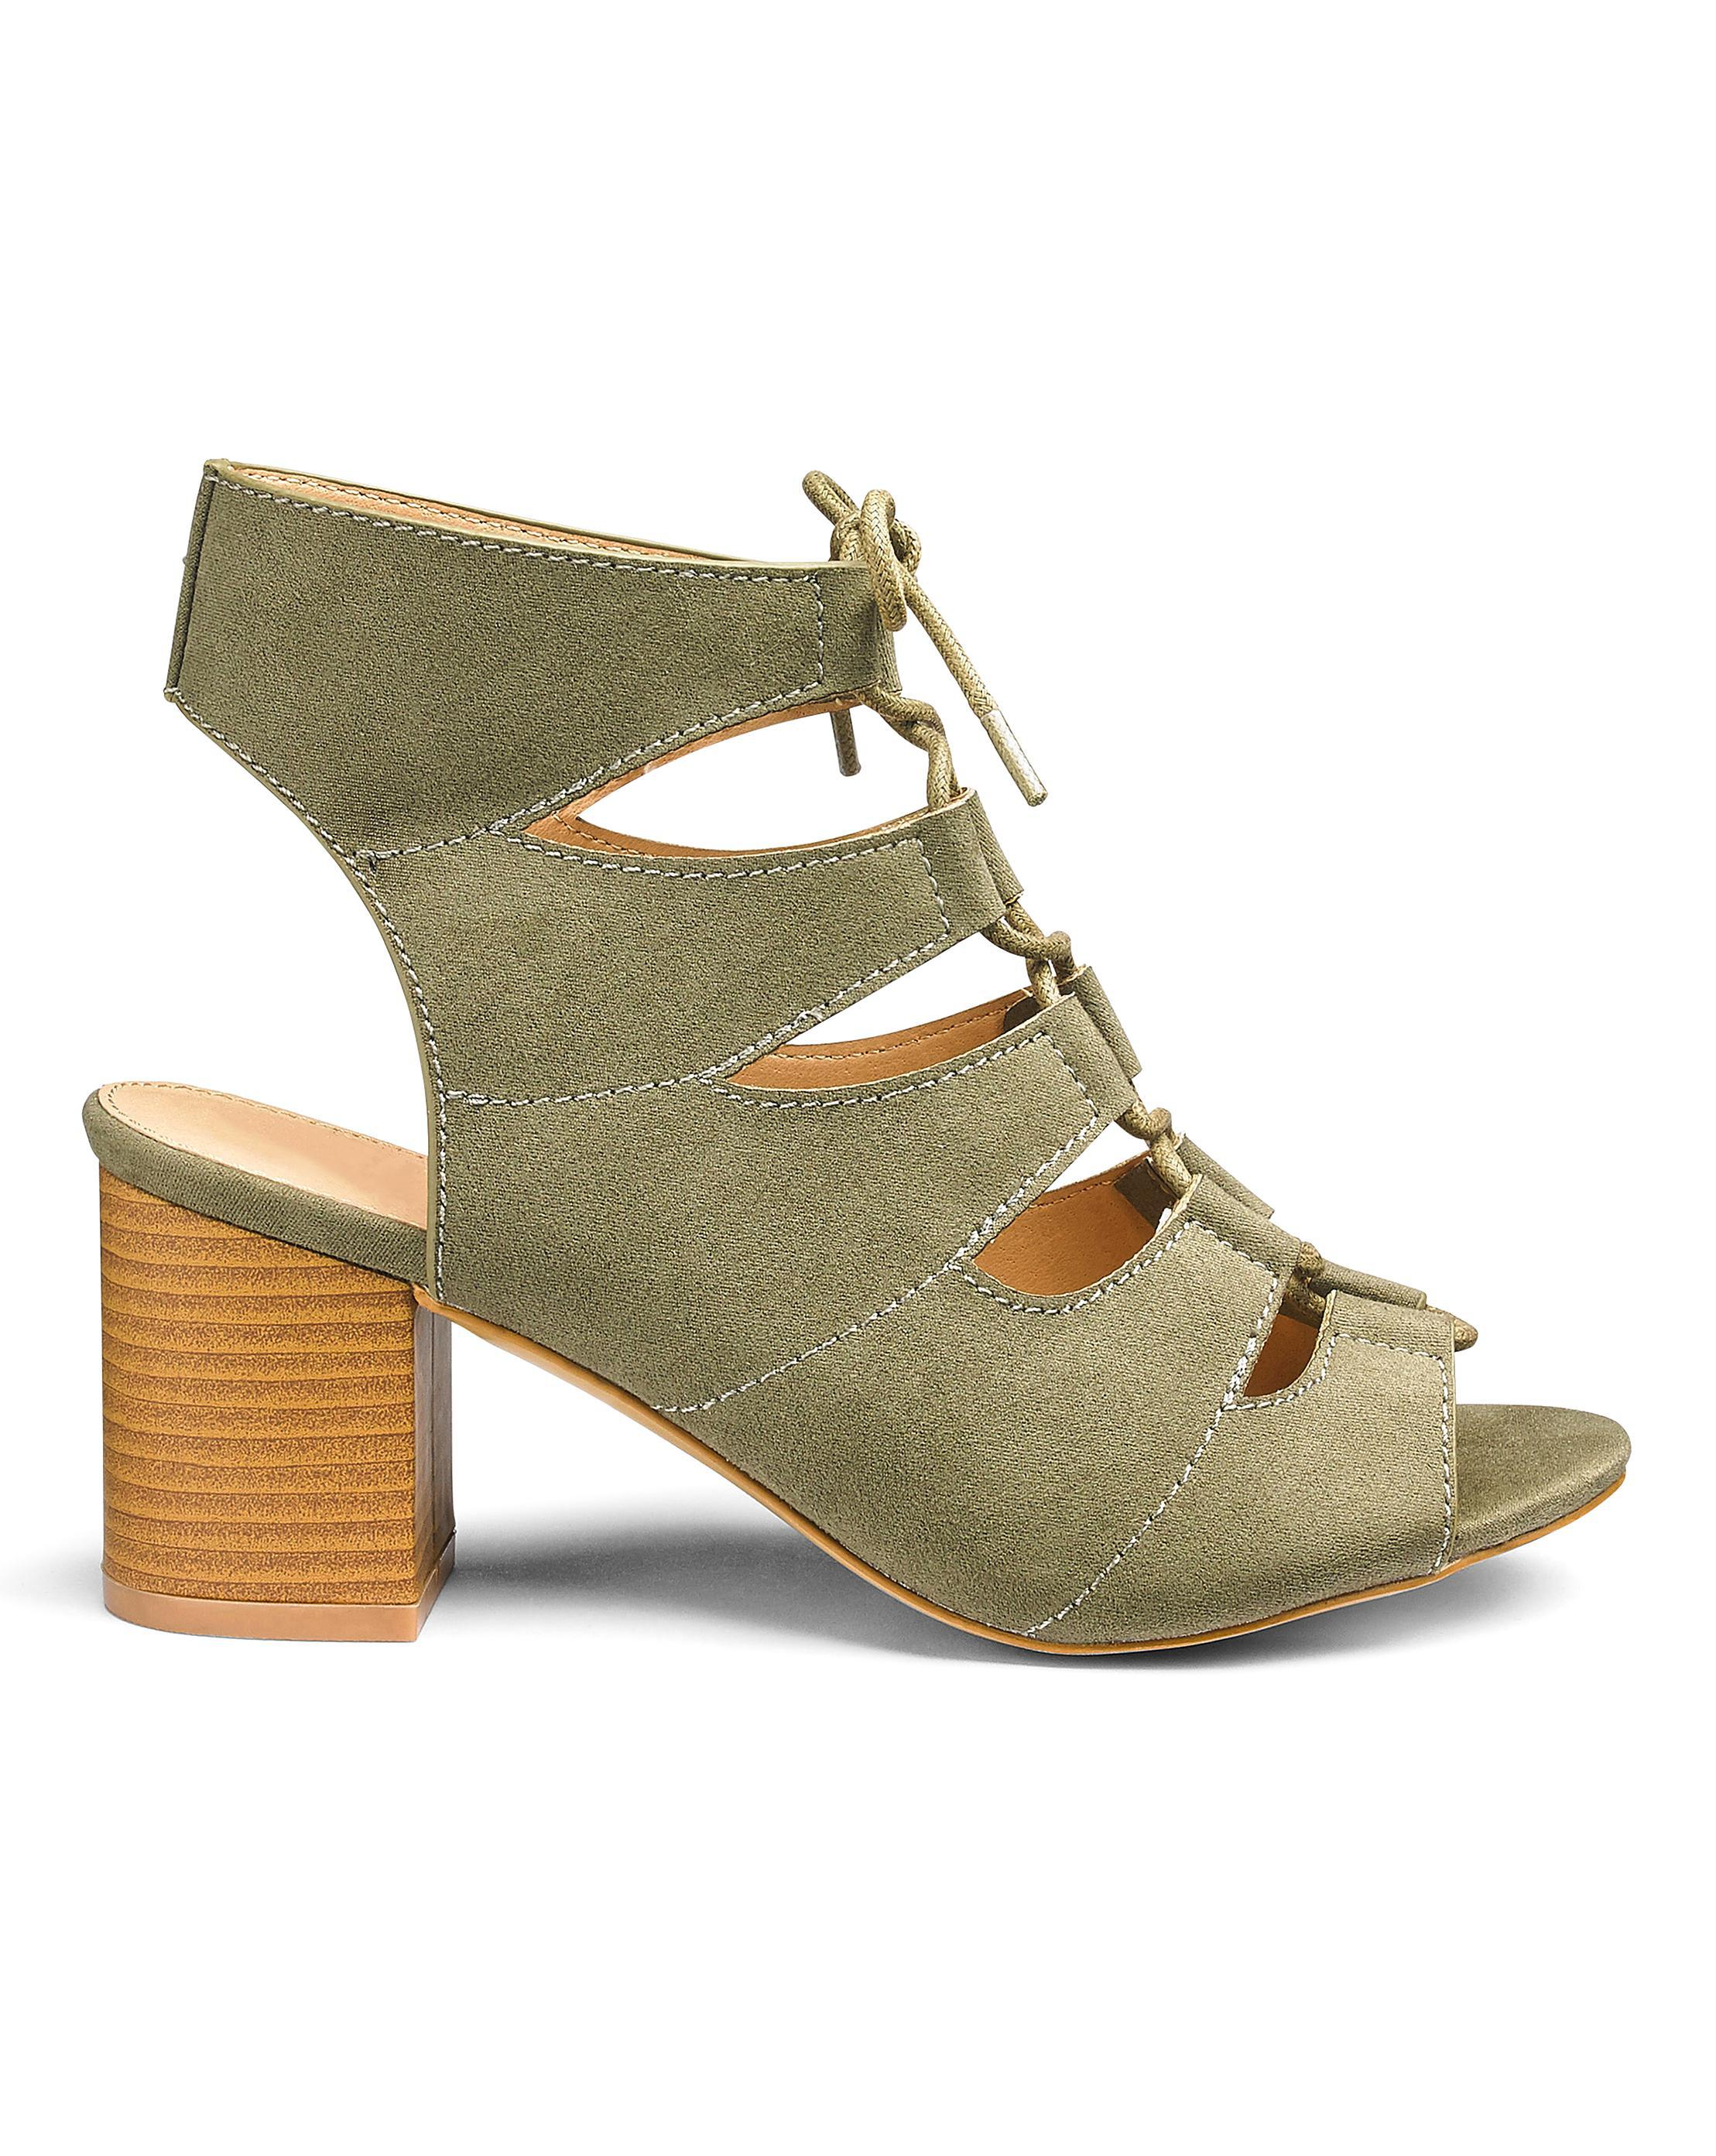 Mabel Tie Sandals Wide cheap sale very cheap fashionable for sale fashionable online outlet popular cSj1Dtn